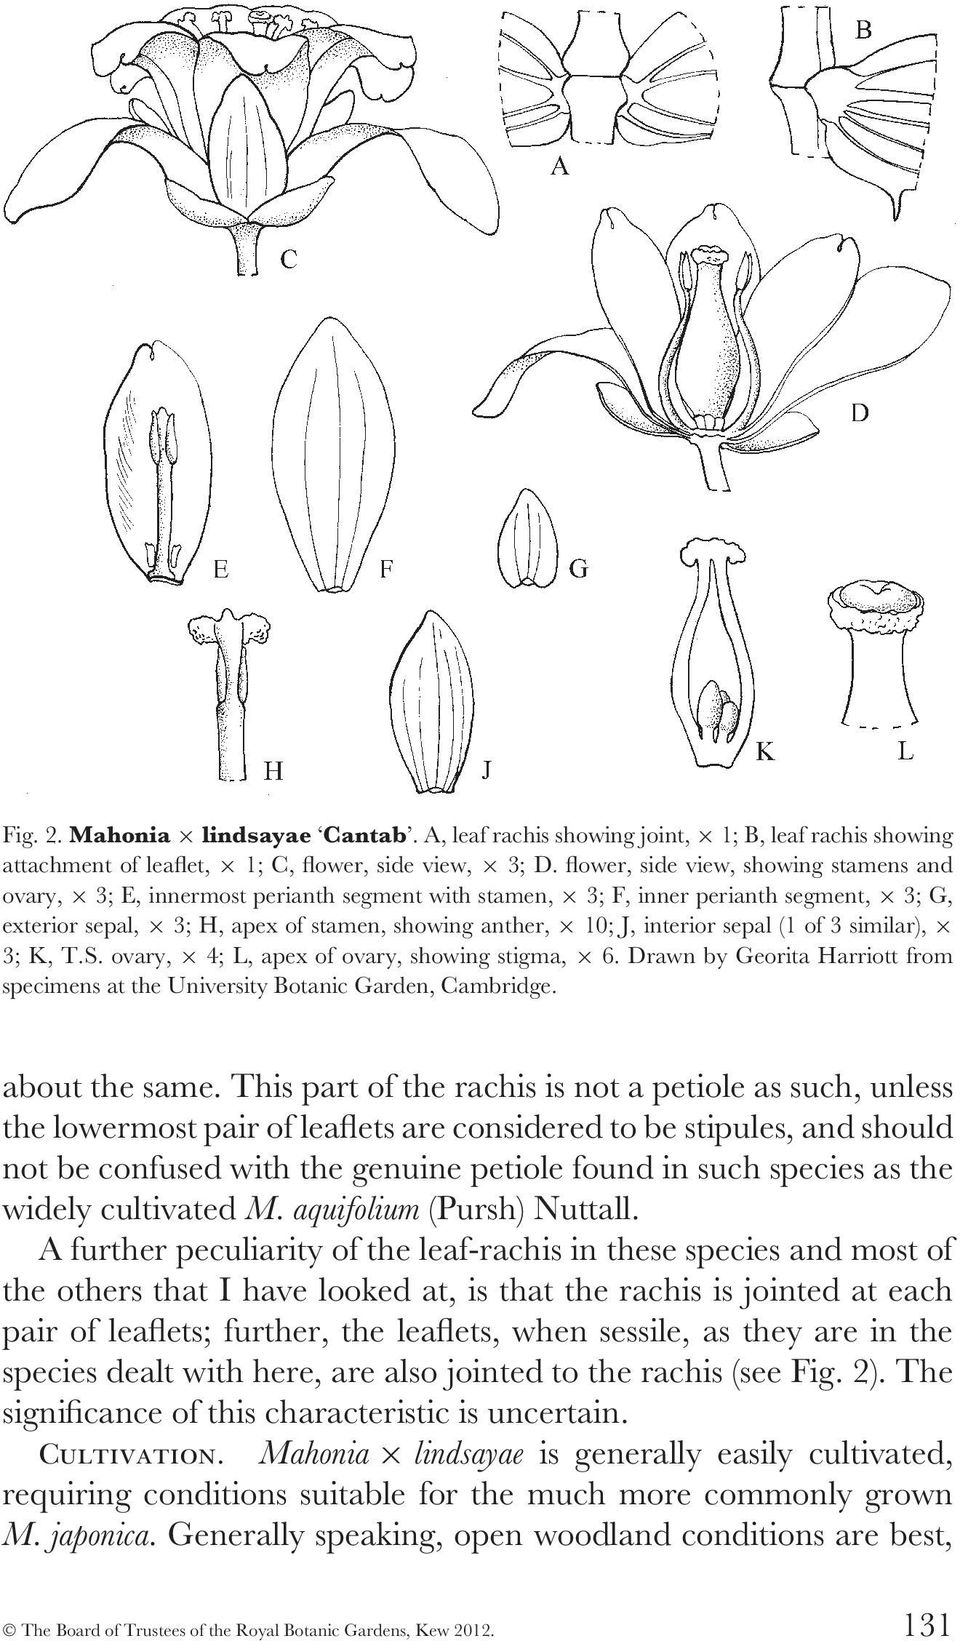 sepal (1 of 3 similar), 3; K, T.S. ovary, 4; L, apex of ovary, showing stigma, 6. Drawn by Georita Harriott from specimens at the University Botanic Garden, Cambridge. about the same.